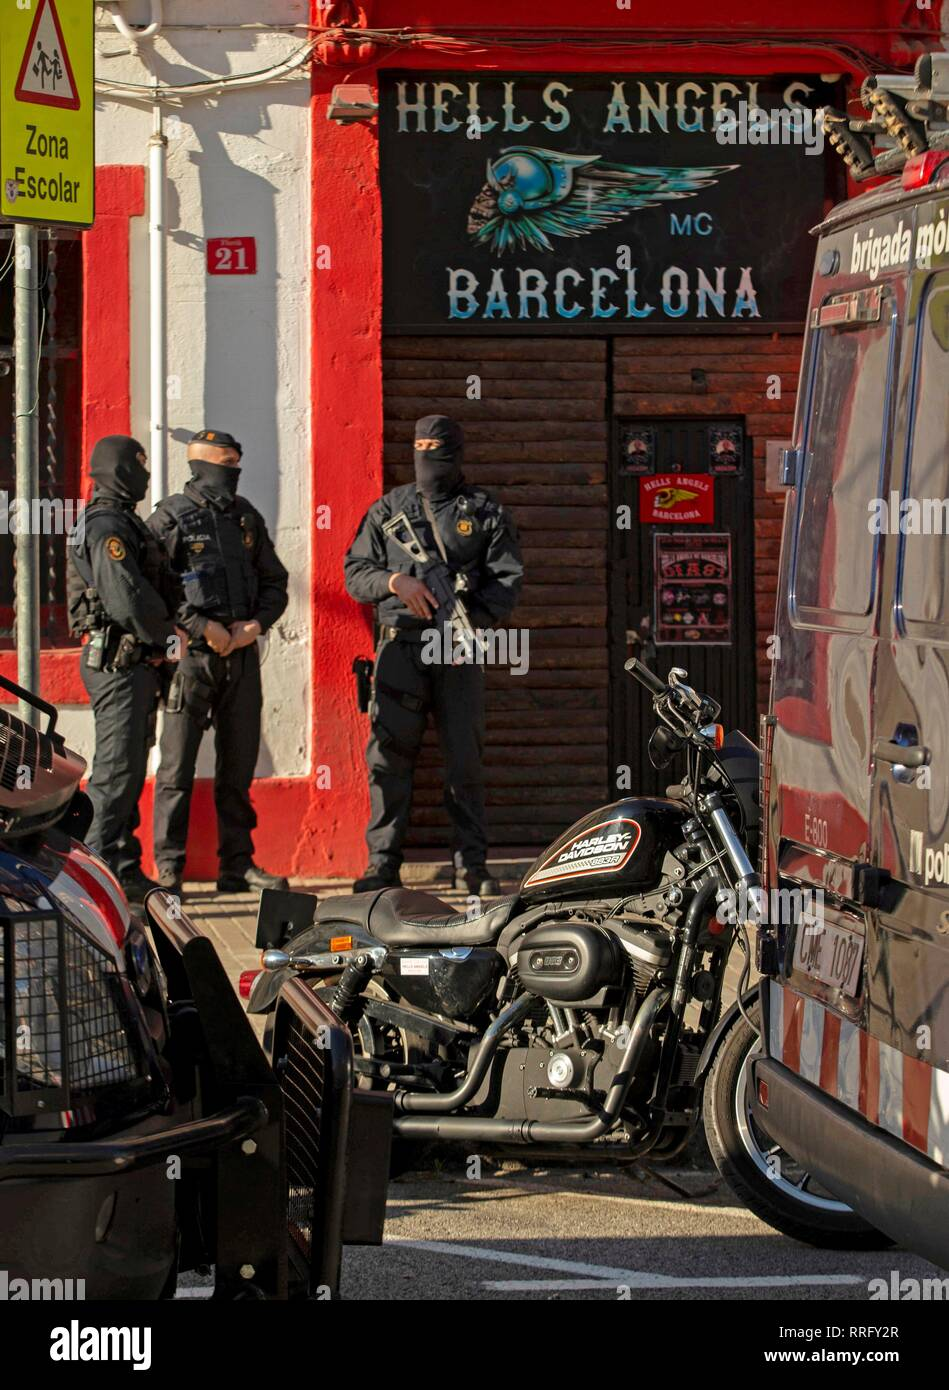 Catalan Mossos d Esquadra policemen keep watch during a search at one of  the premises of the Hells Angels motorcycle club in Barcelona f24184a5d54